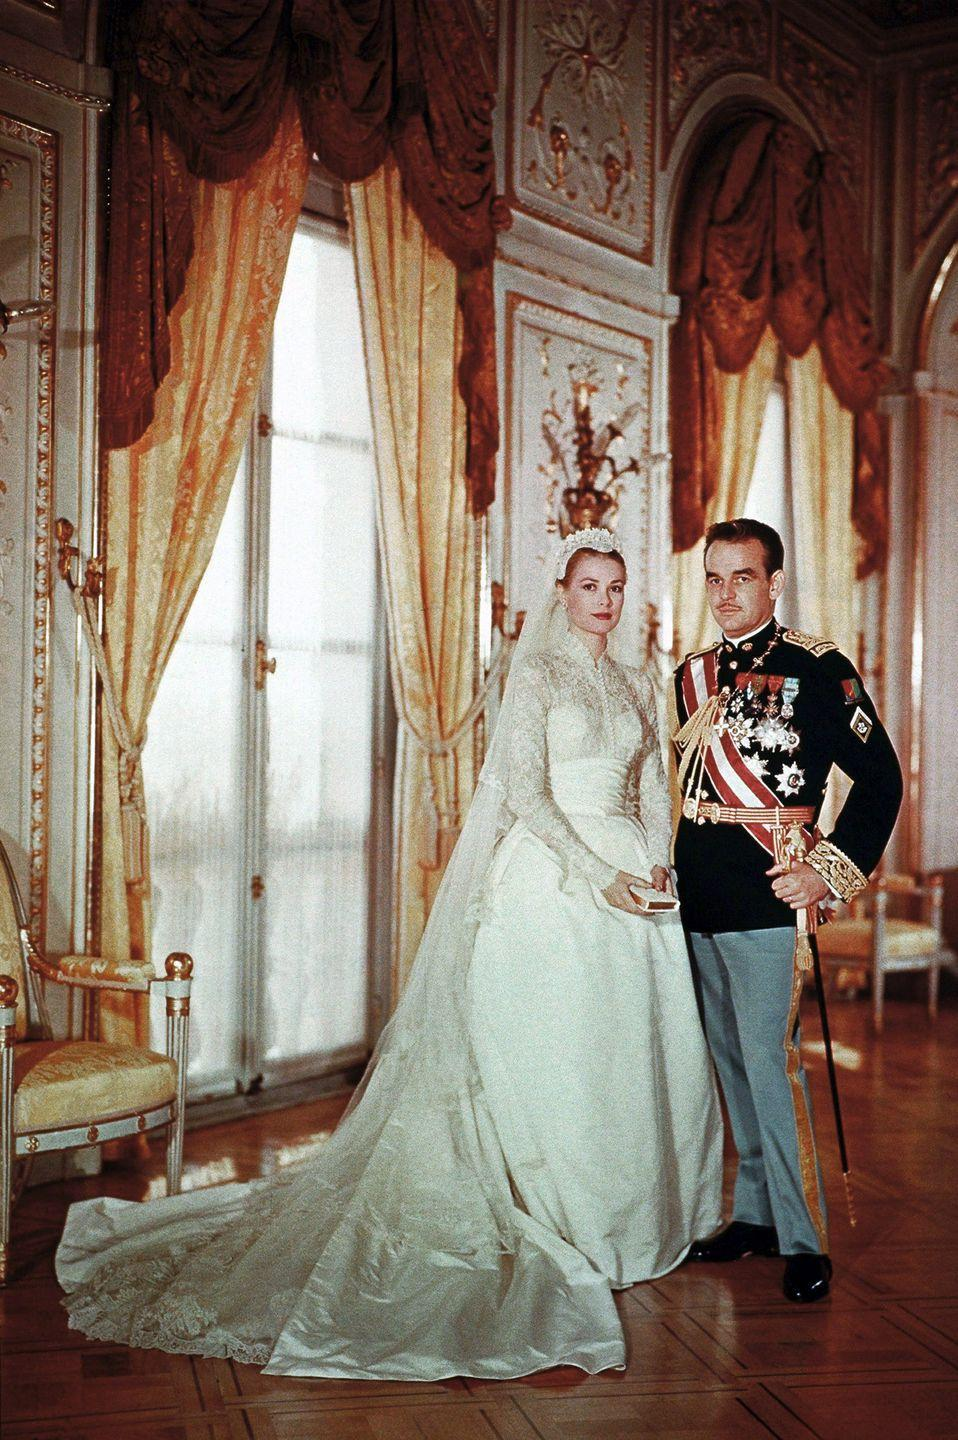 "<p>The actress-turned-royal chose a long-sleeve gown by costume designer <a href=""https://www.goodhousekeeping.com/beauty/fashion/g4719/grace-kelly-wedding-gown/?slide=1"" rel=""nofollow noopener"" target=""_blank"" data-ylk=""slk:Helen Rose"" class=""link rapid-noclick-resp"">Helen Rose</a>.</p>"